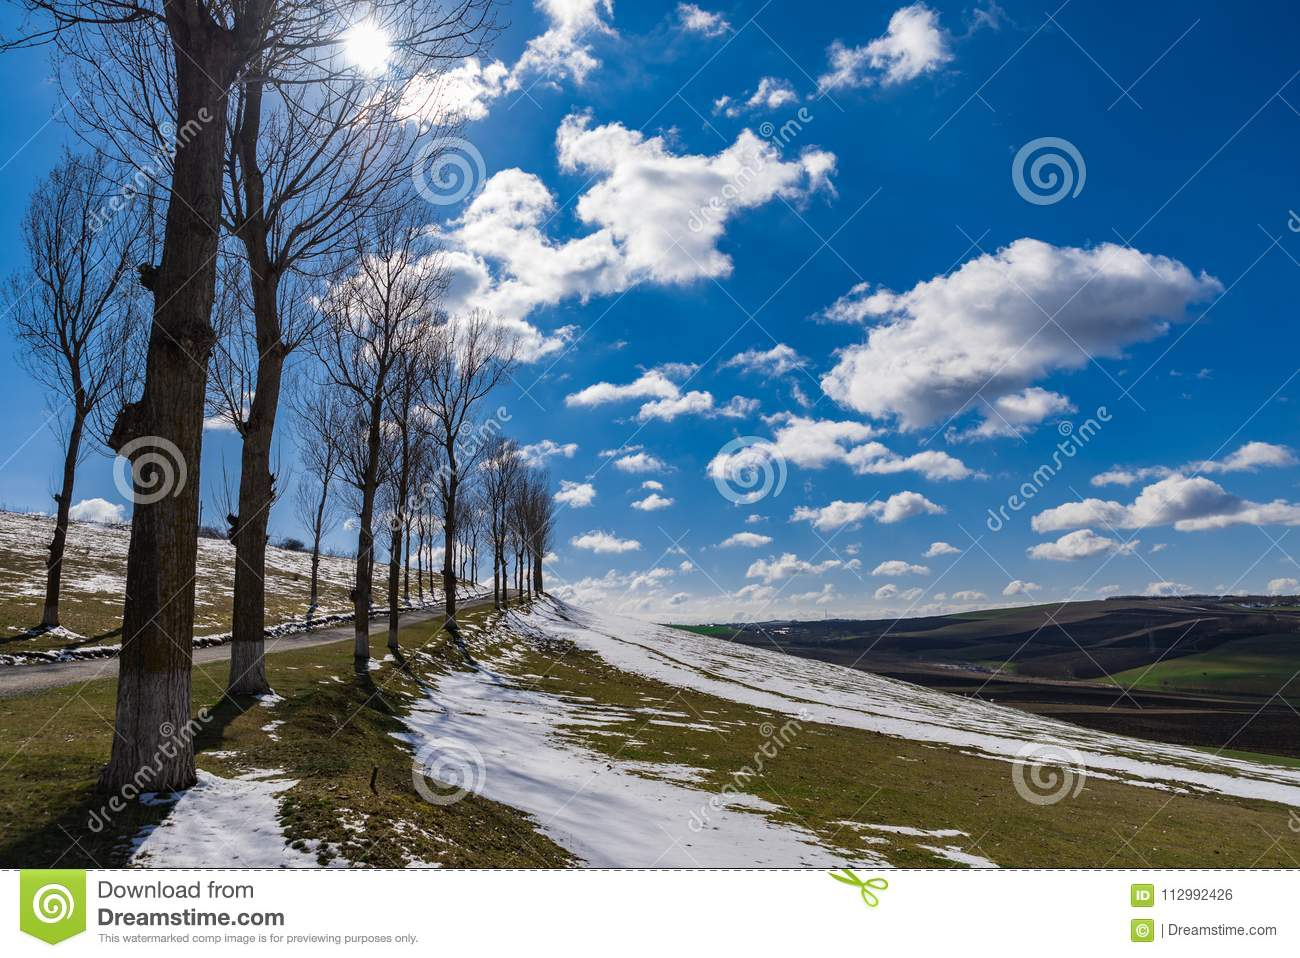 First day of spring landscape